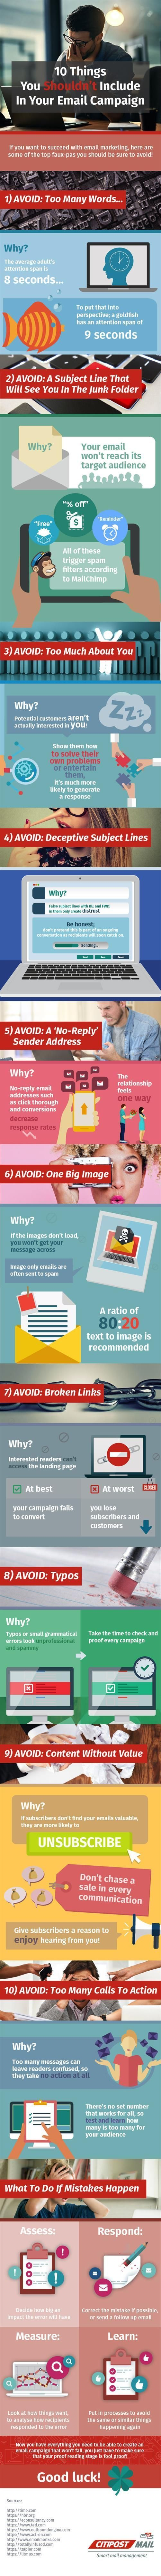 Email Marketing - 10 Ways to Ruin an Email Campaign [Infographic] : MarketingProfs Article